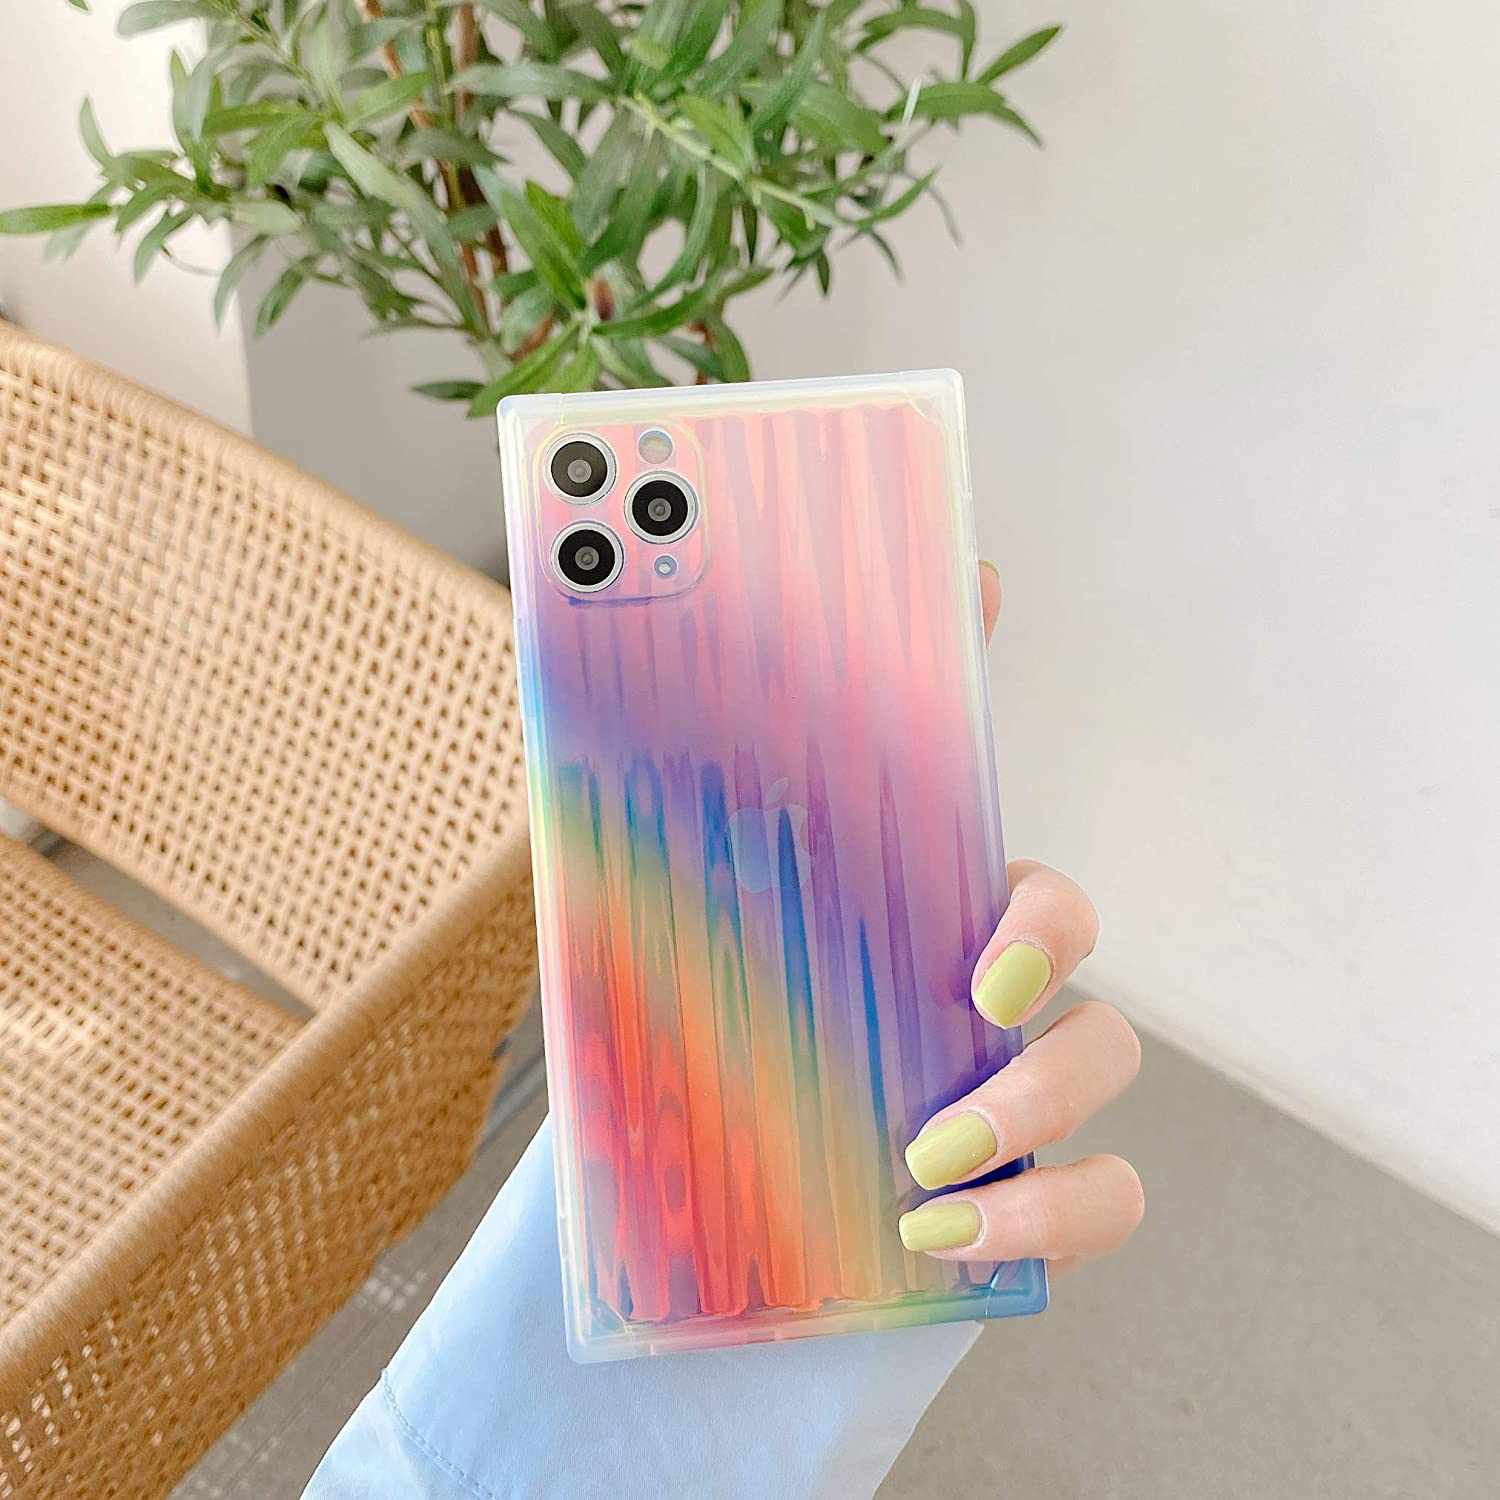 Cocomii Square Holographic Clear iPhone 8 Plus/7 Plus Case, Slim Thin Glossy Soft TPU Silicone Rubber Gel Shiny Gradient Reflection Fashion Bumper Cover for Apple iPhone 8 Plus/7 Plus (Rainbow)